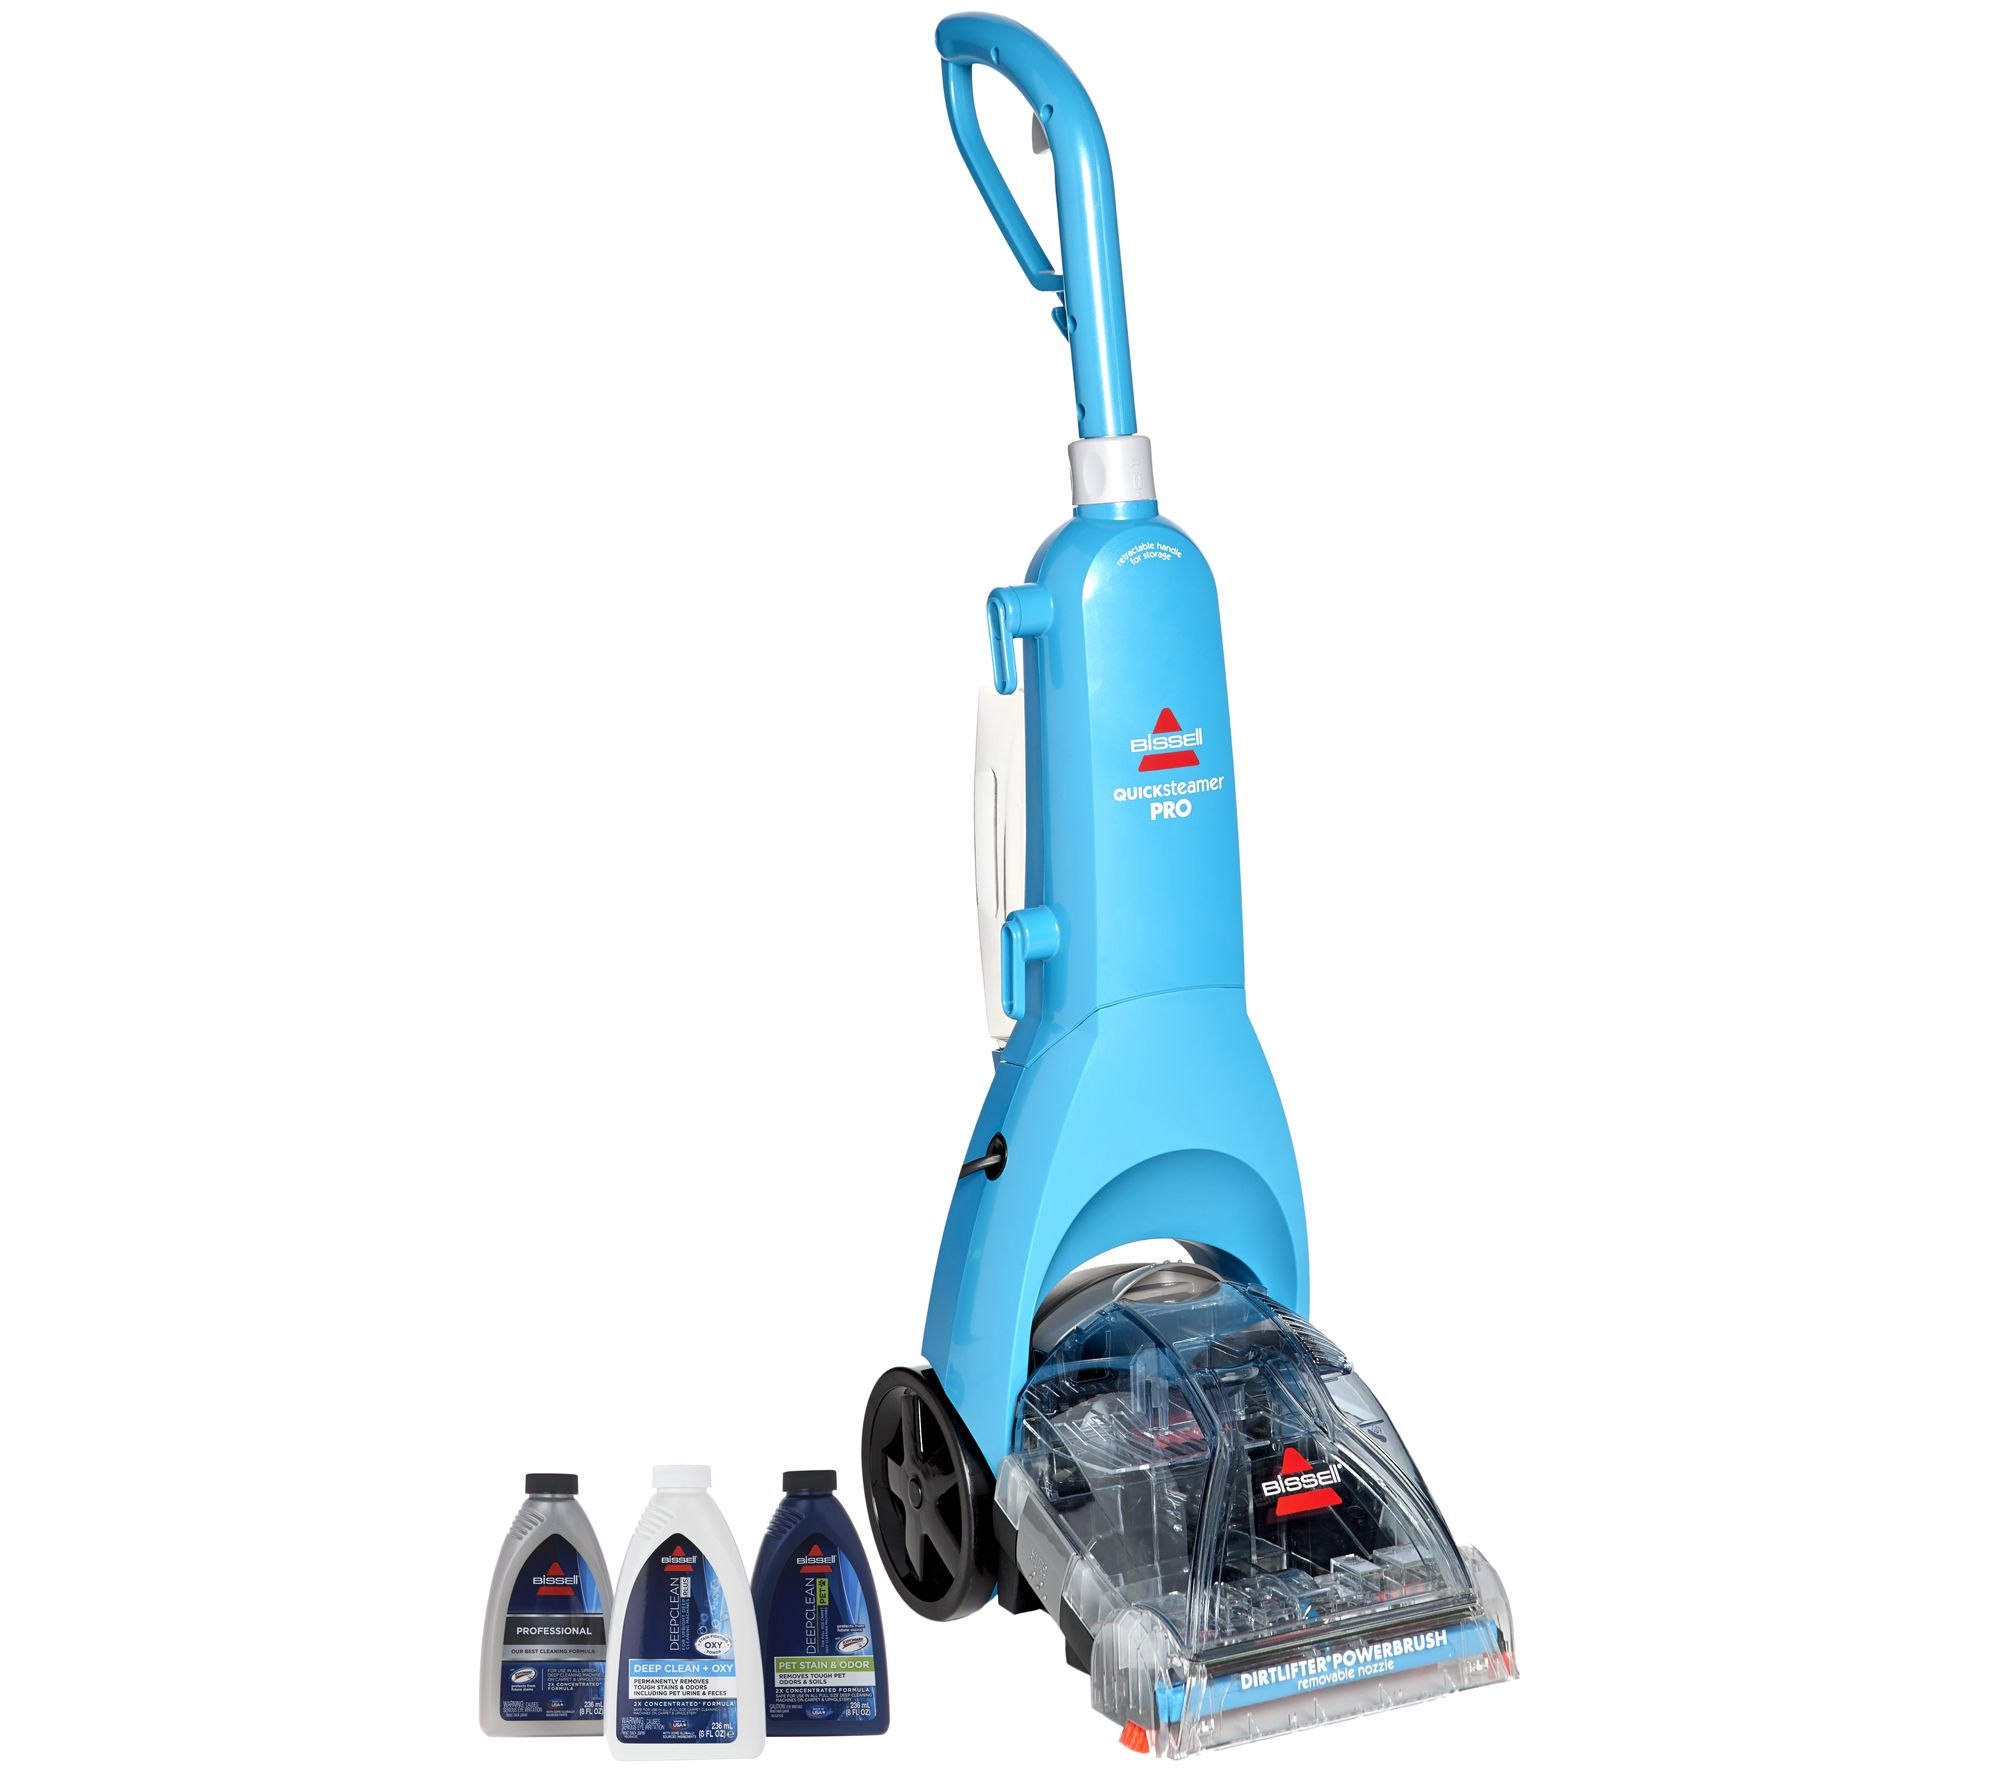 bissell pro deep clean carpet cleaner w 3 formulas page 1 u2014 qvccom - Bissell Pet Carpet Cleaner